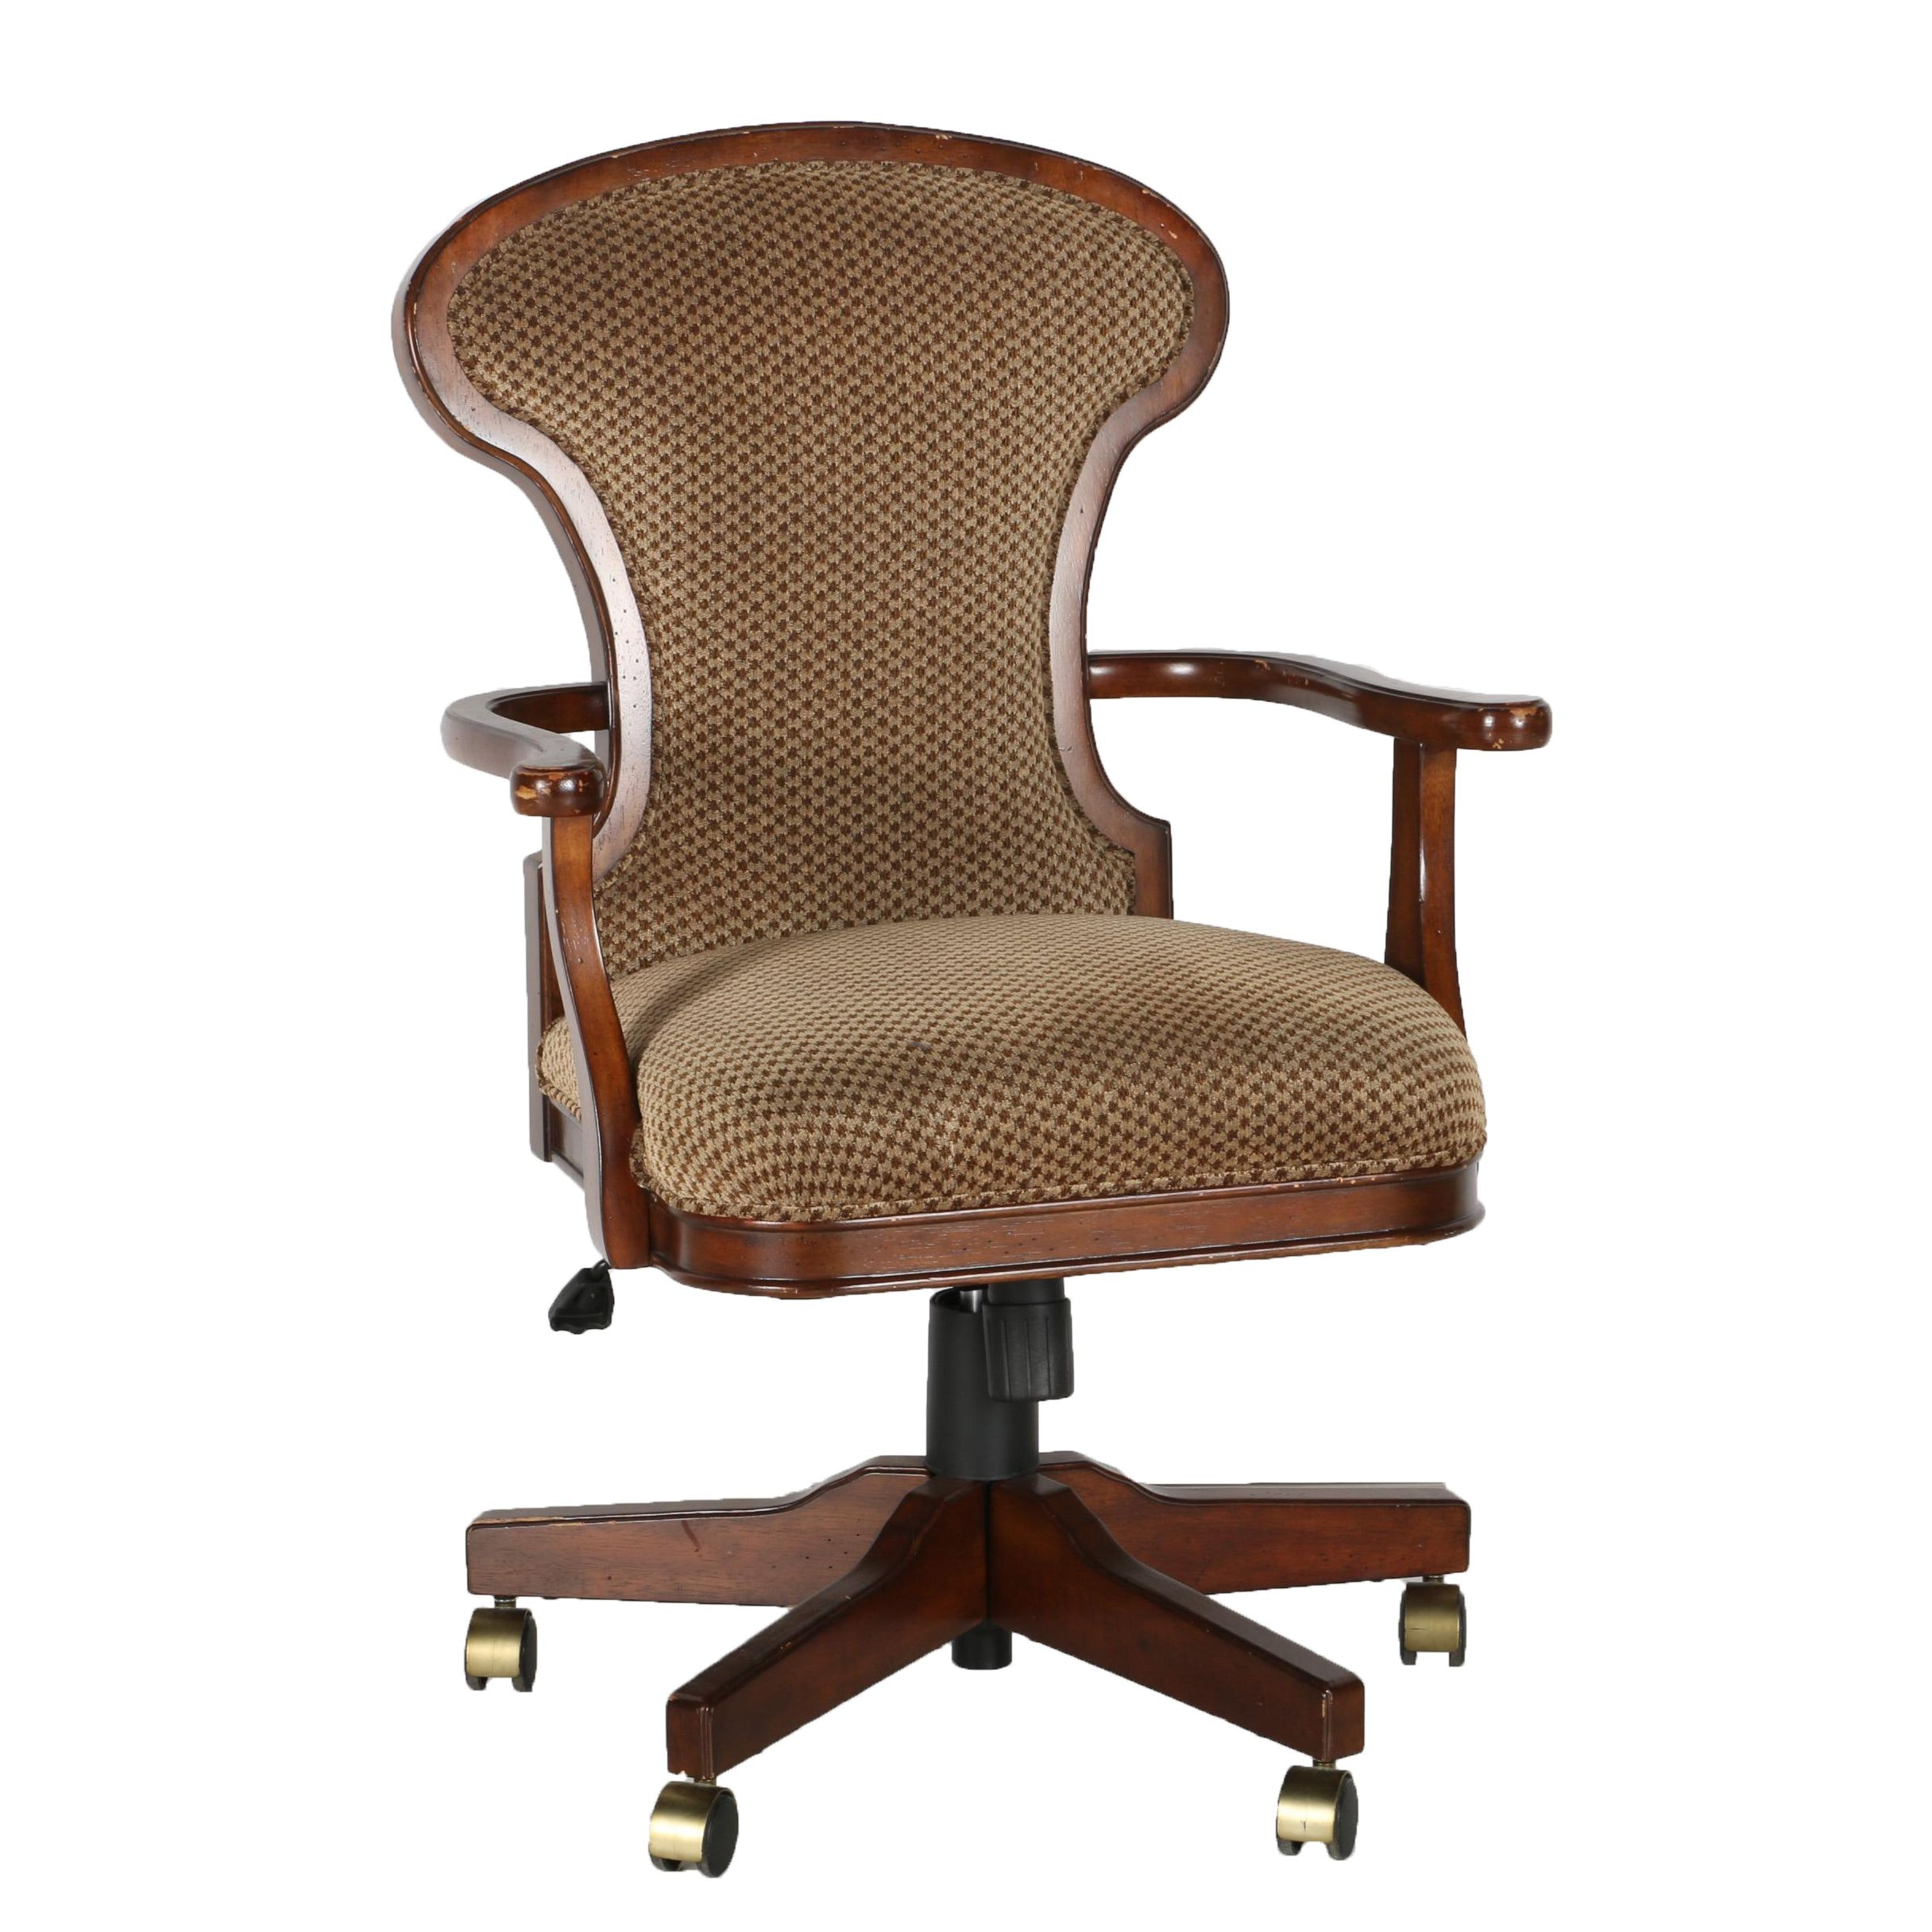 bombay upholstered wood office chair : ebth